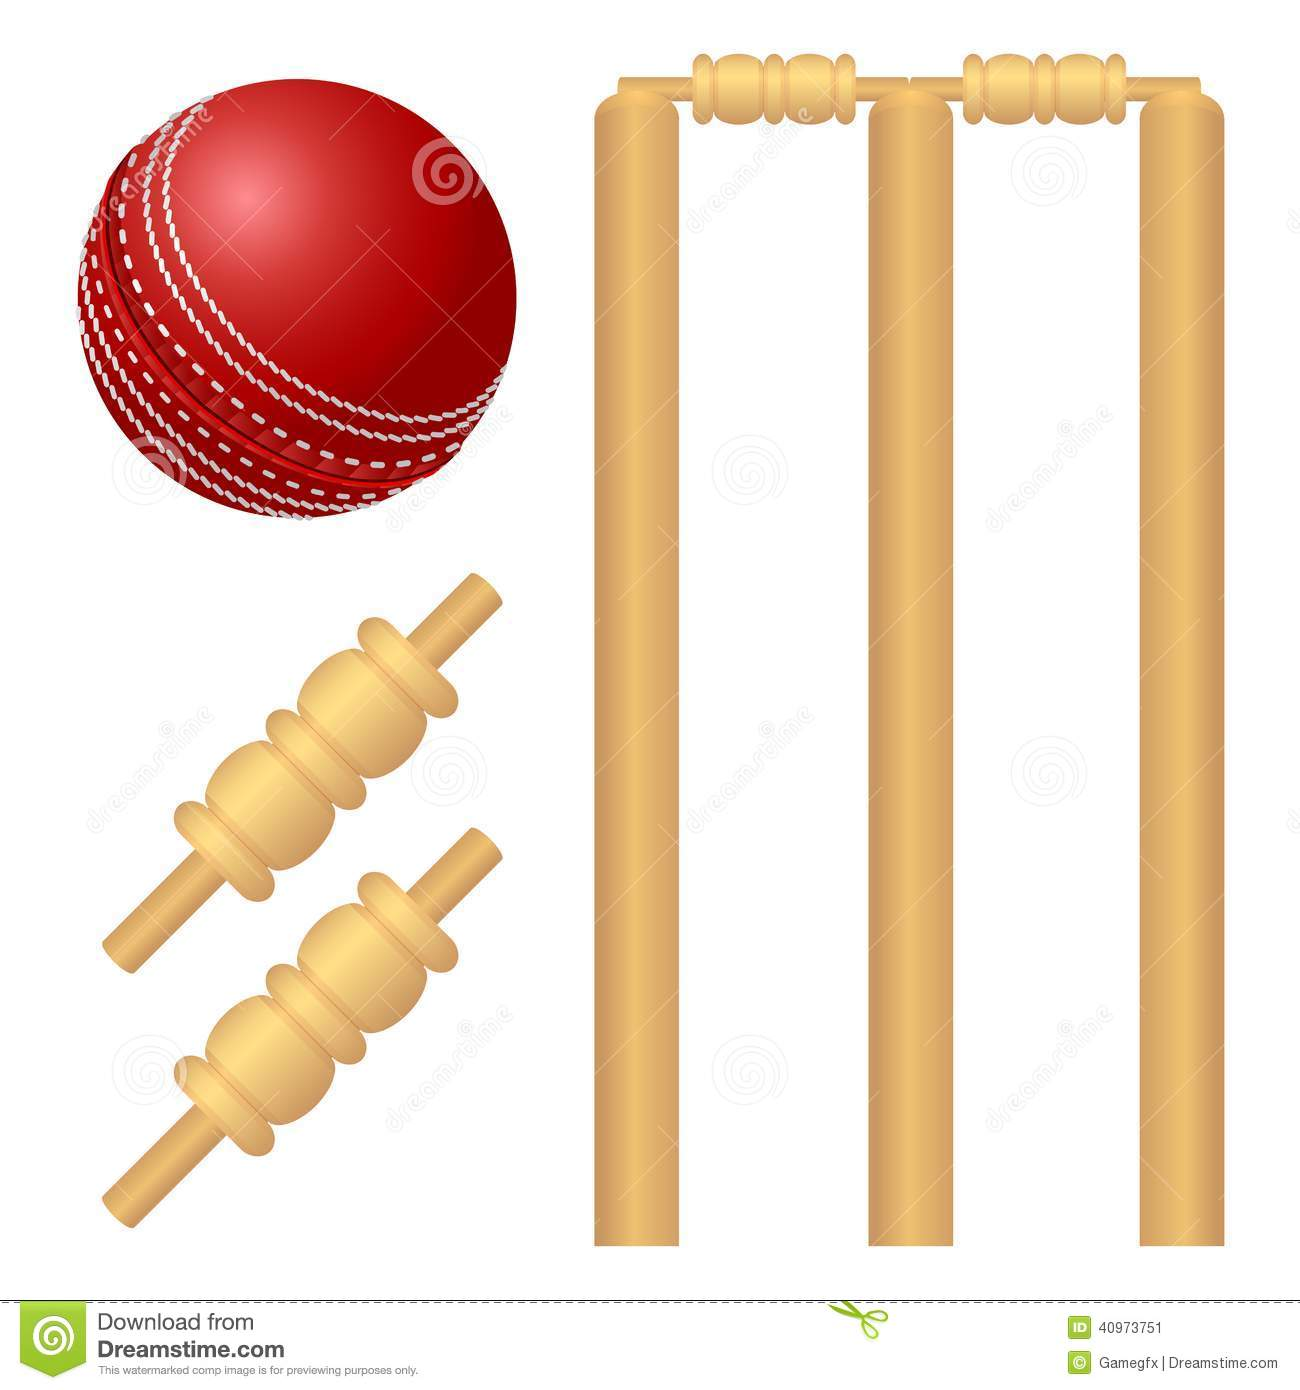 how to swing a cricket ball video download